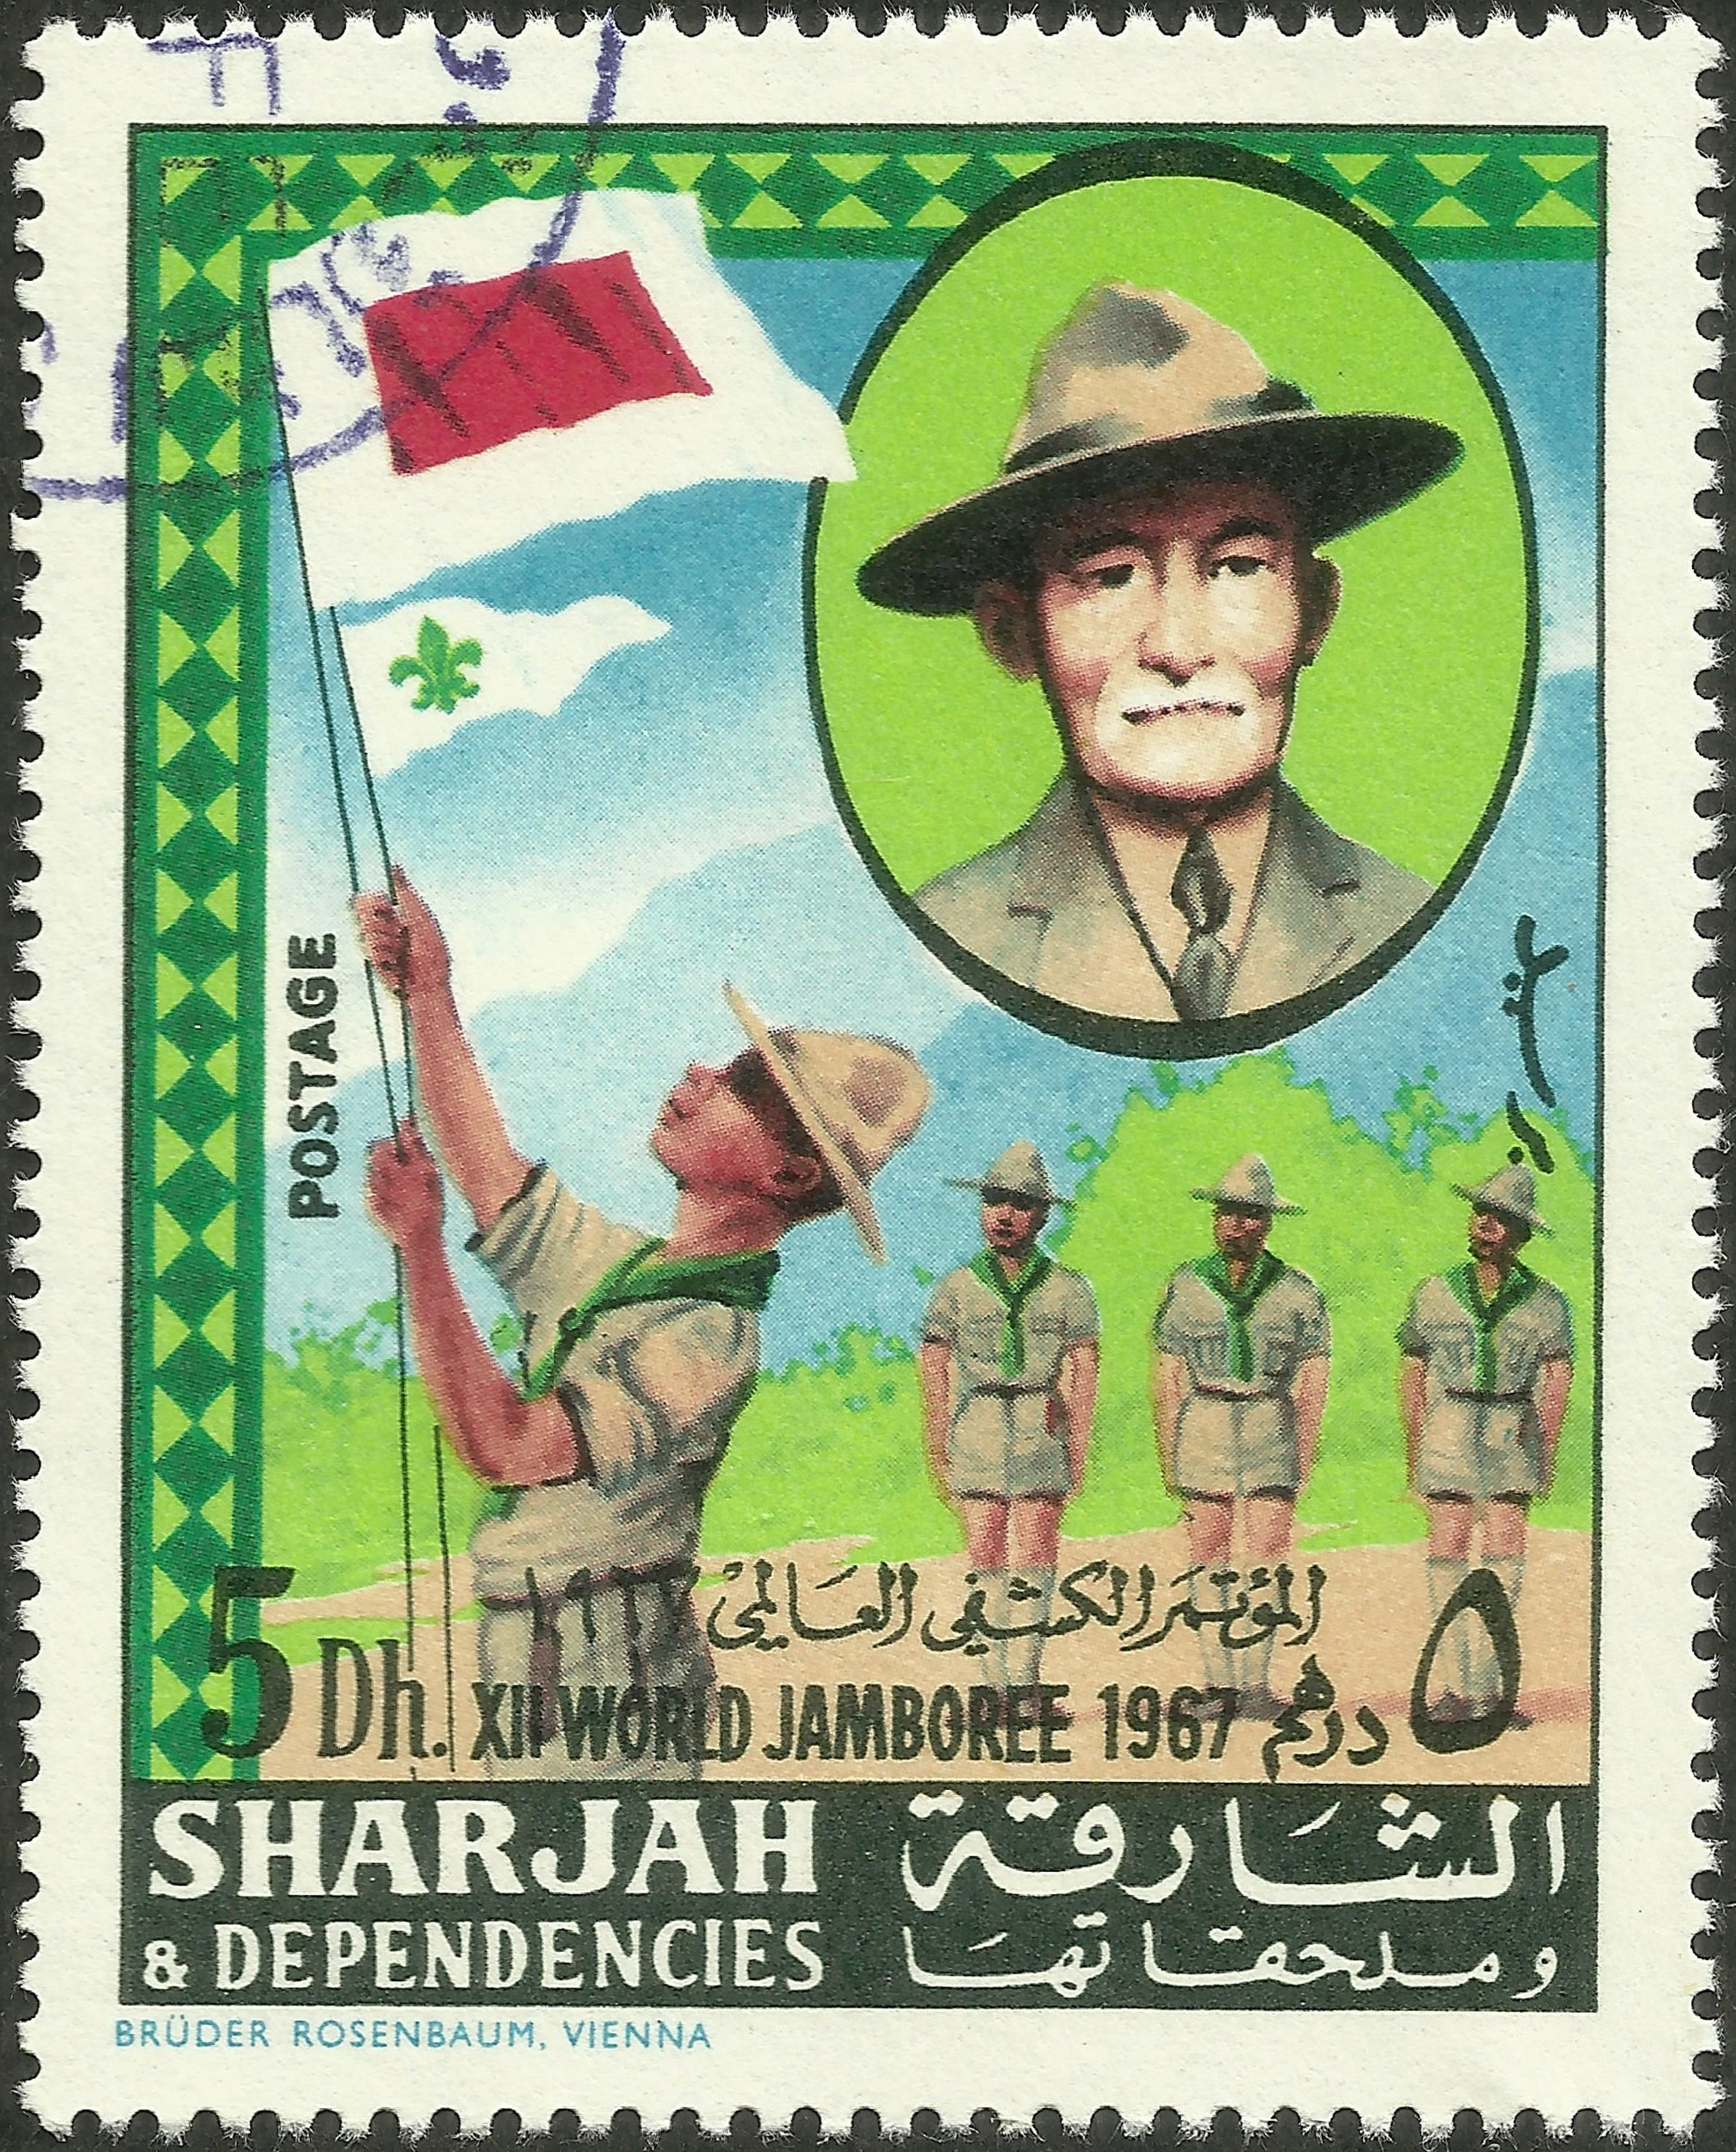 Sharjah & Dependencies – 12th World Scout Jamboree (1968)